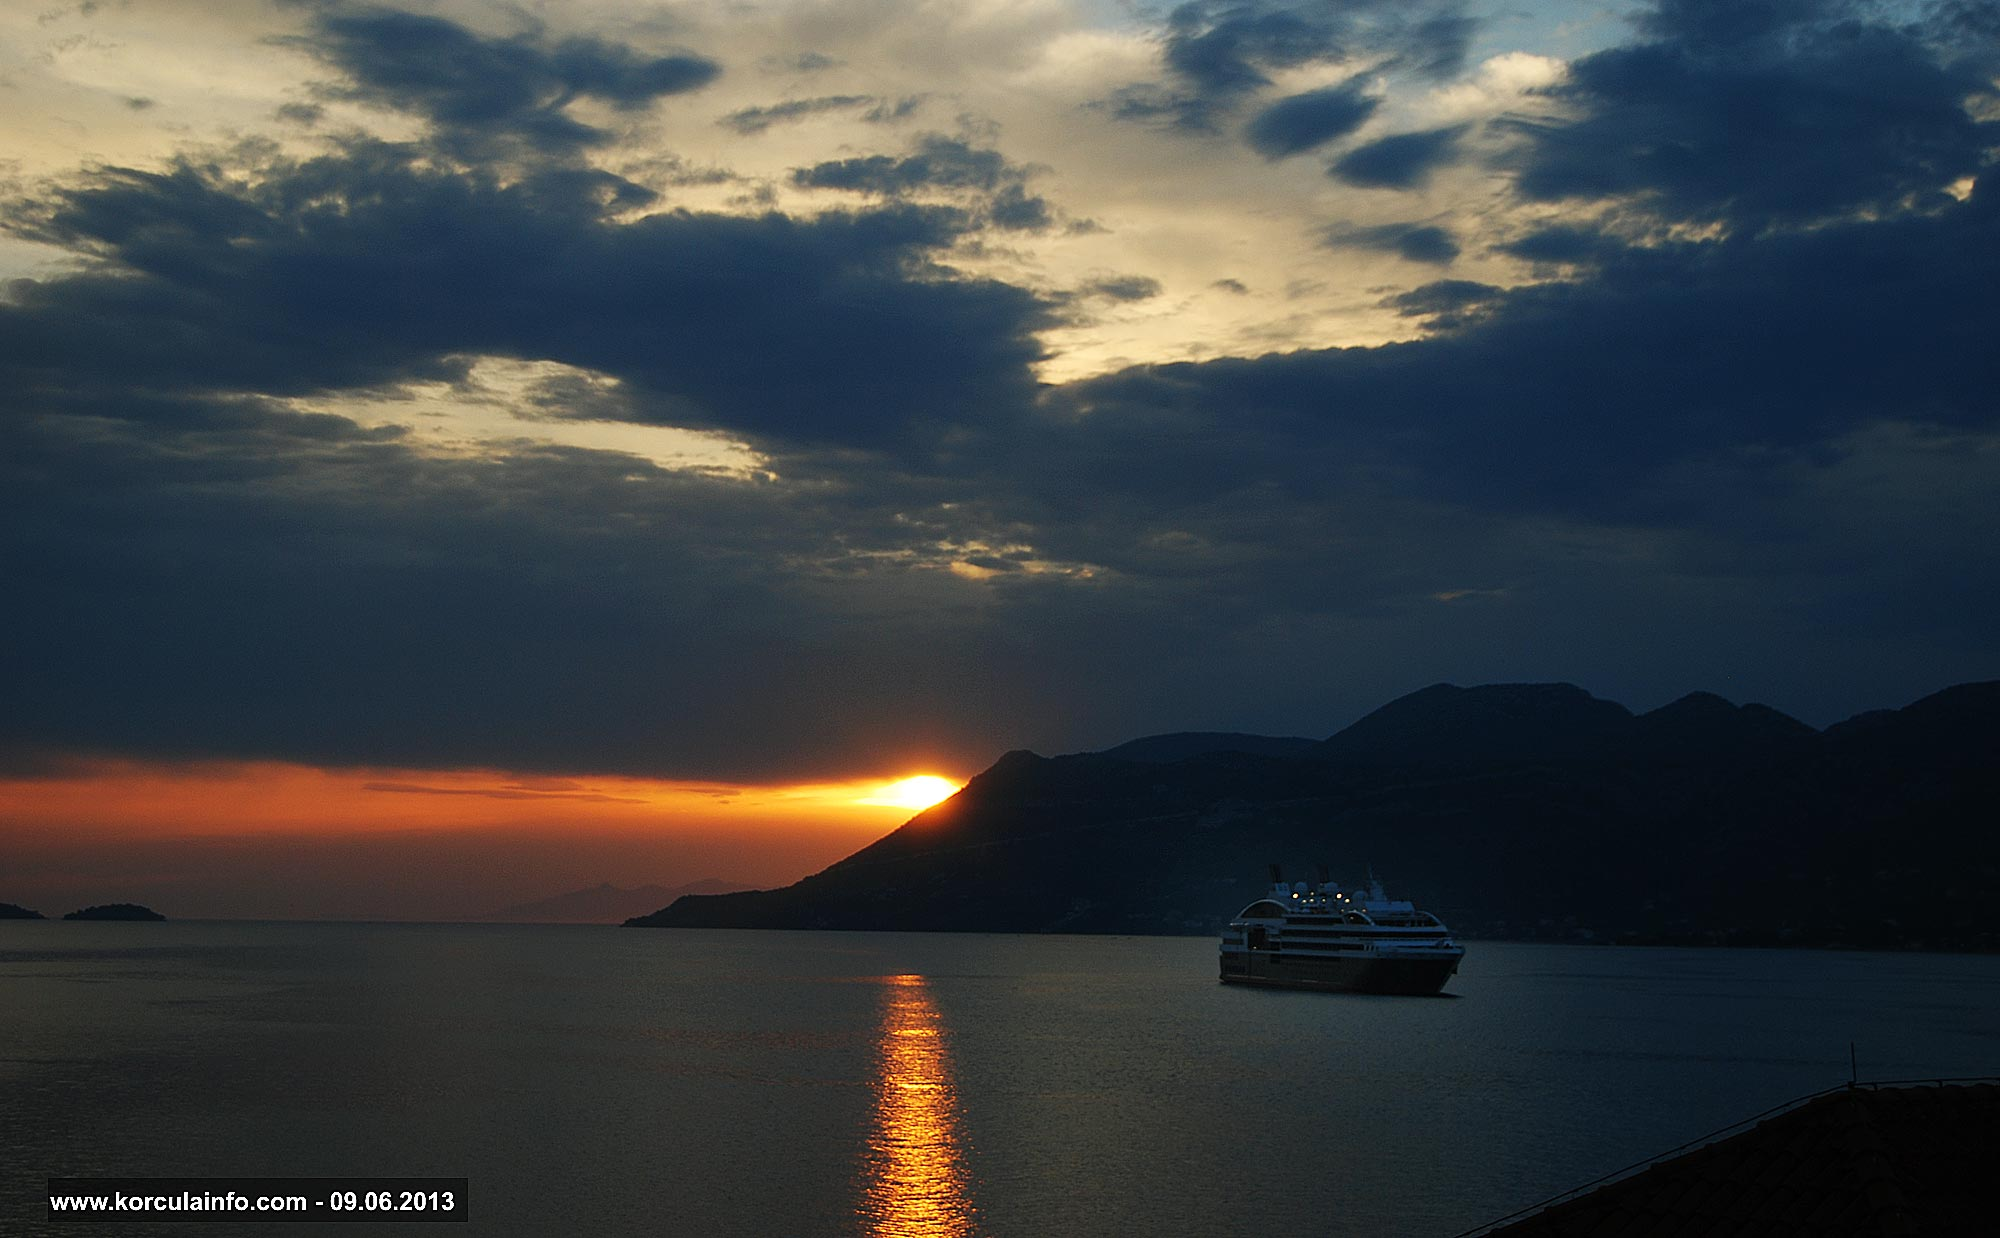 Peljesac Channel Sunset - viewed from Korcula Island